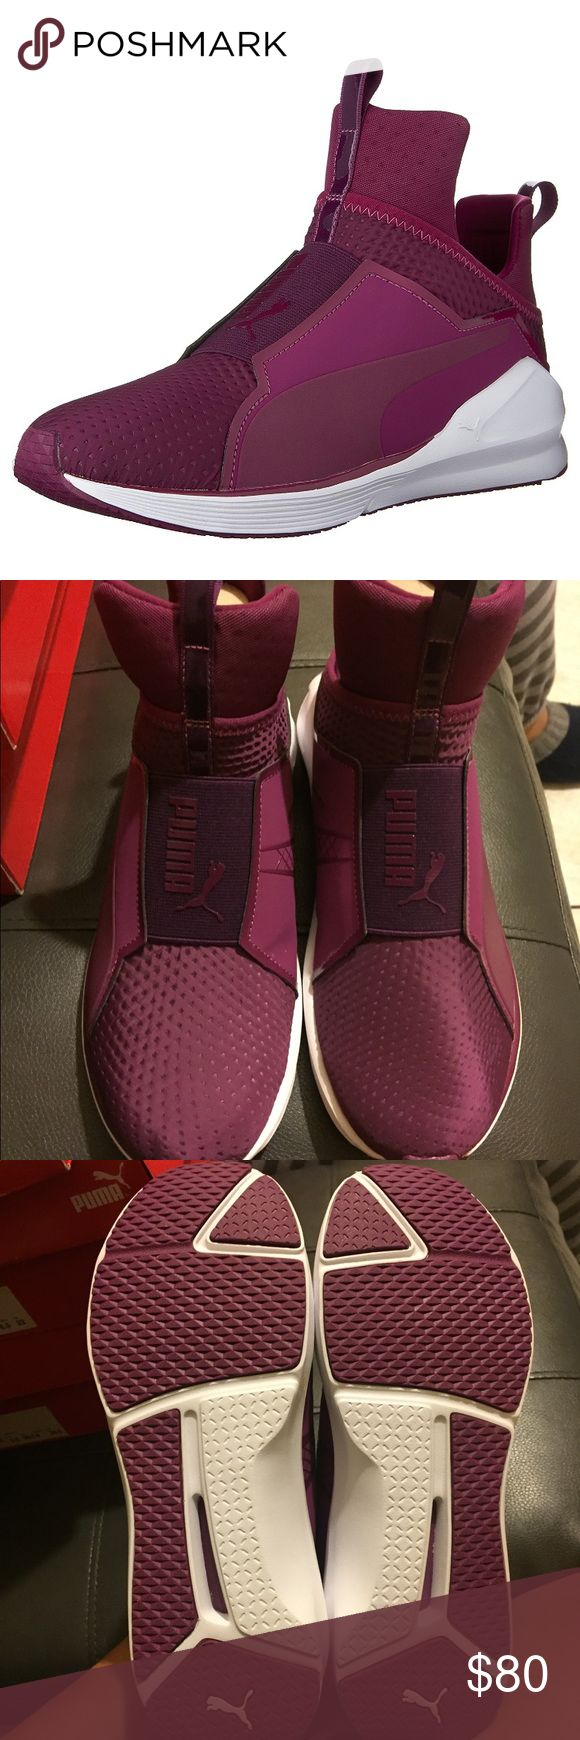 NEW PUMA FIERCE QUILTED MAGENTA PURPLE WMNS 9 New with box. Authentic. Color is magenta purple. Women's size 9. These shoes do not have shoe laces. No defects. Puma Shoes Sneakers